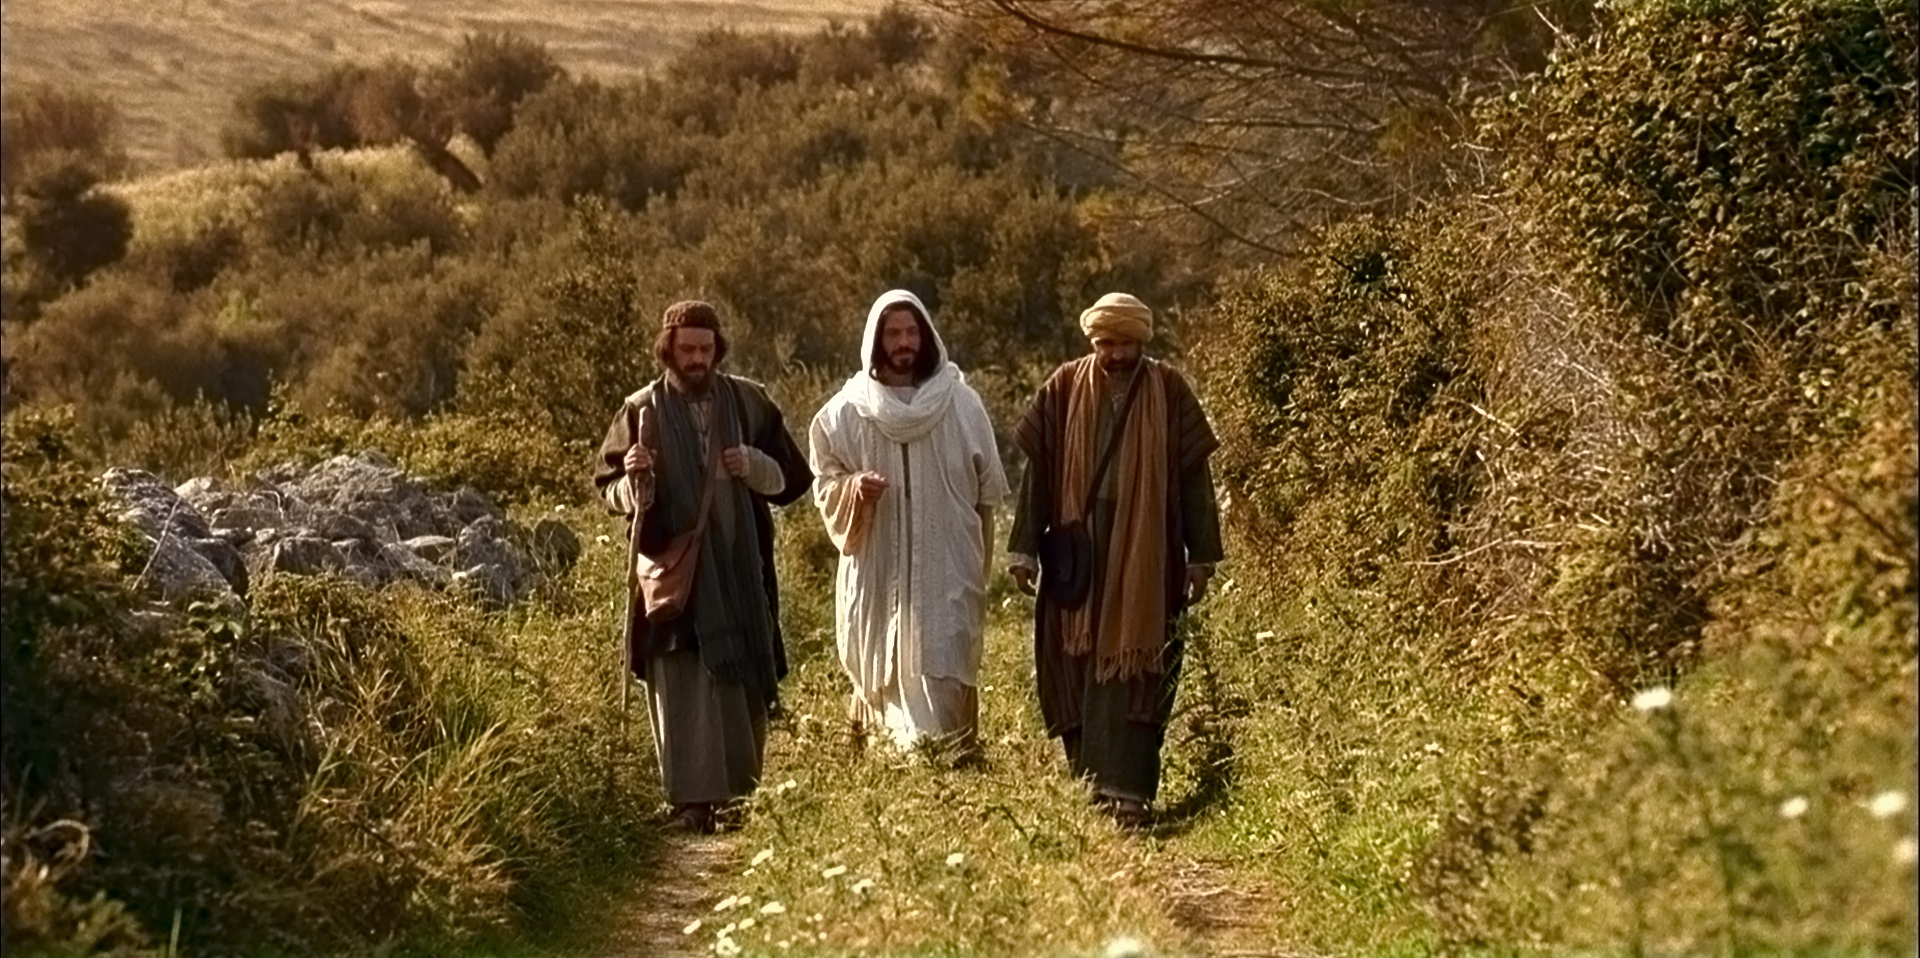 Third Sunday of Easter – April 26, 2020